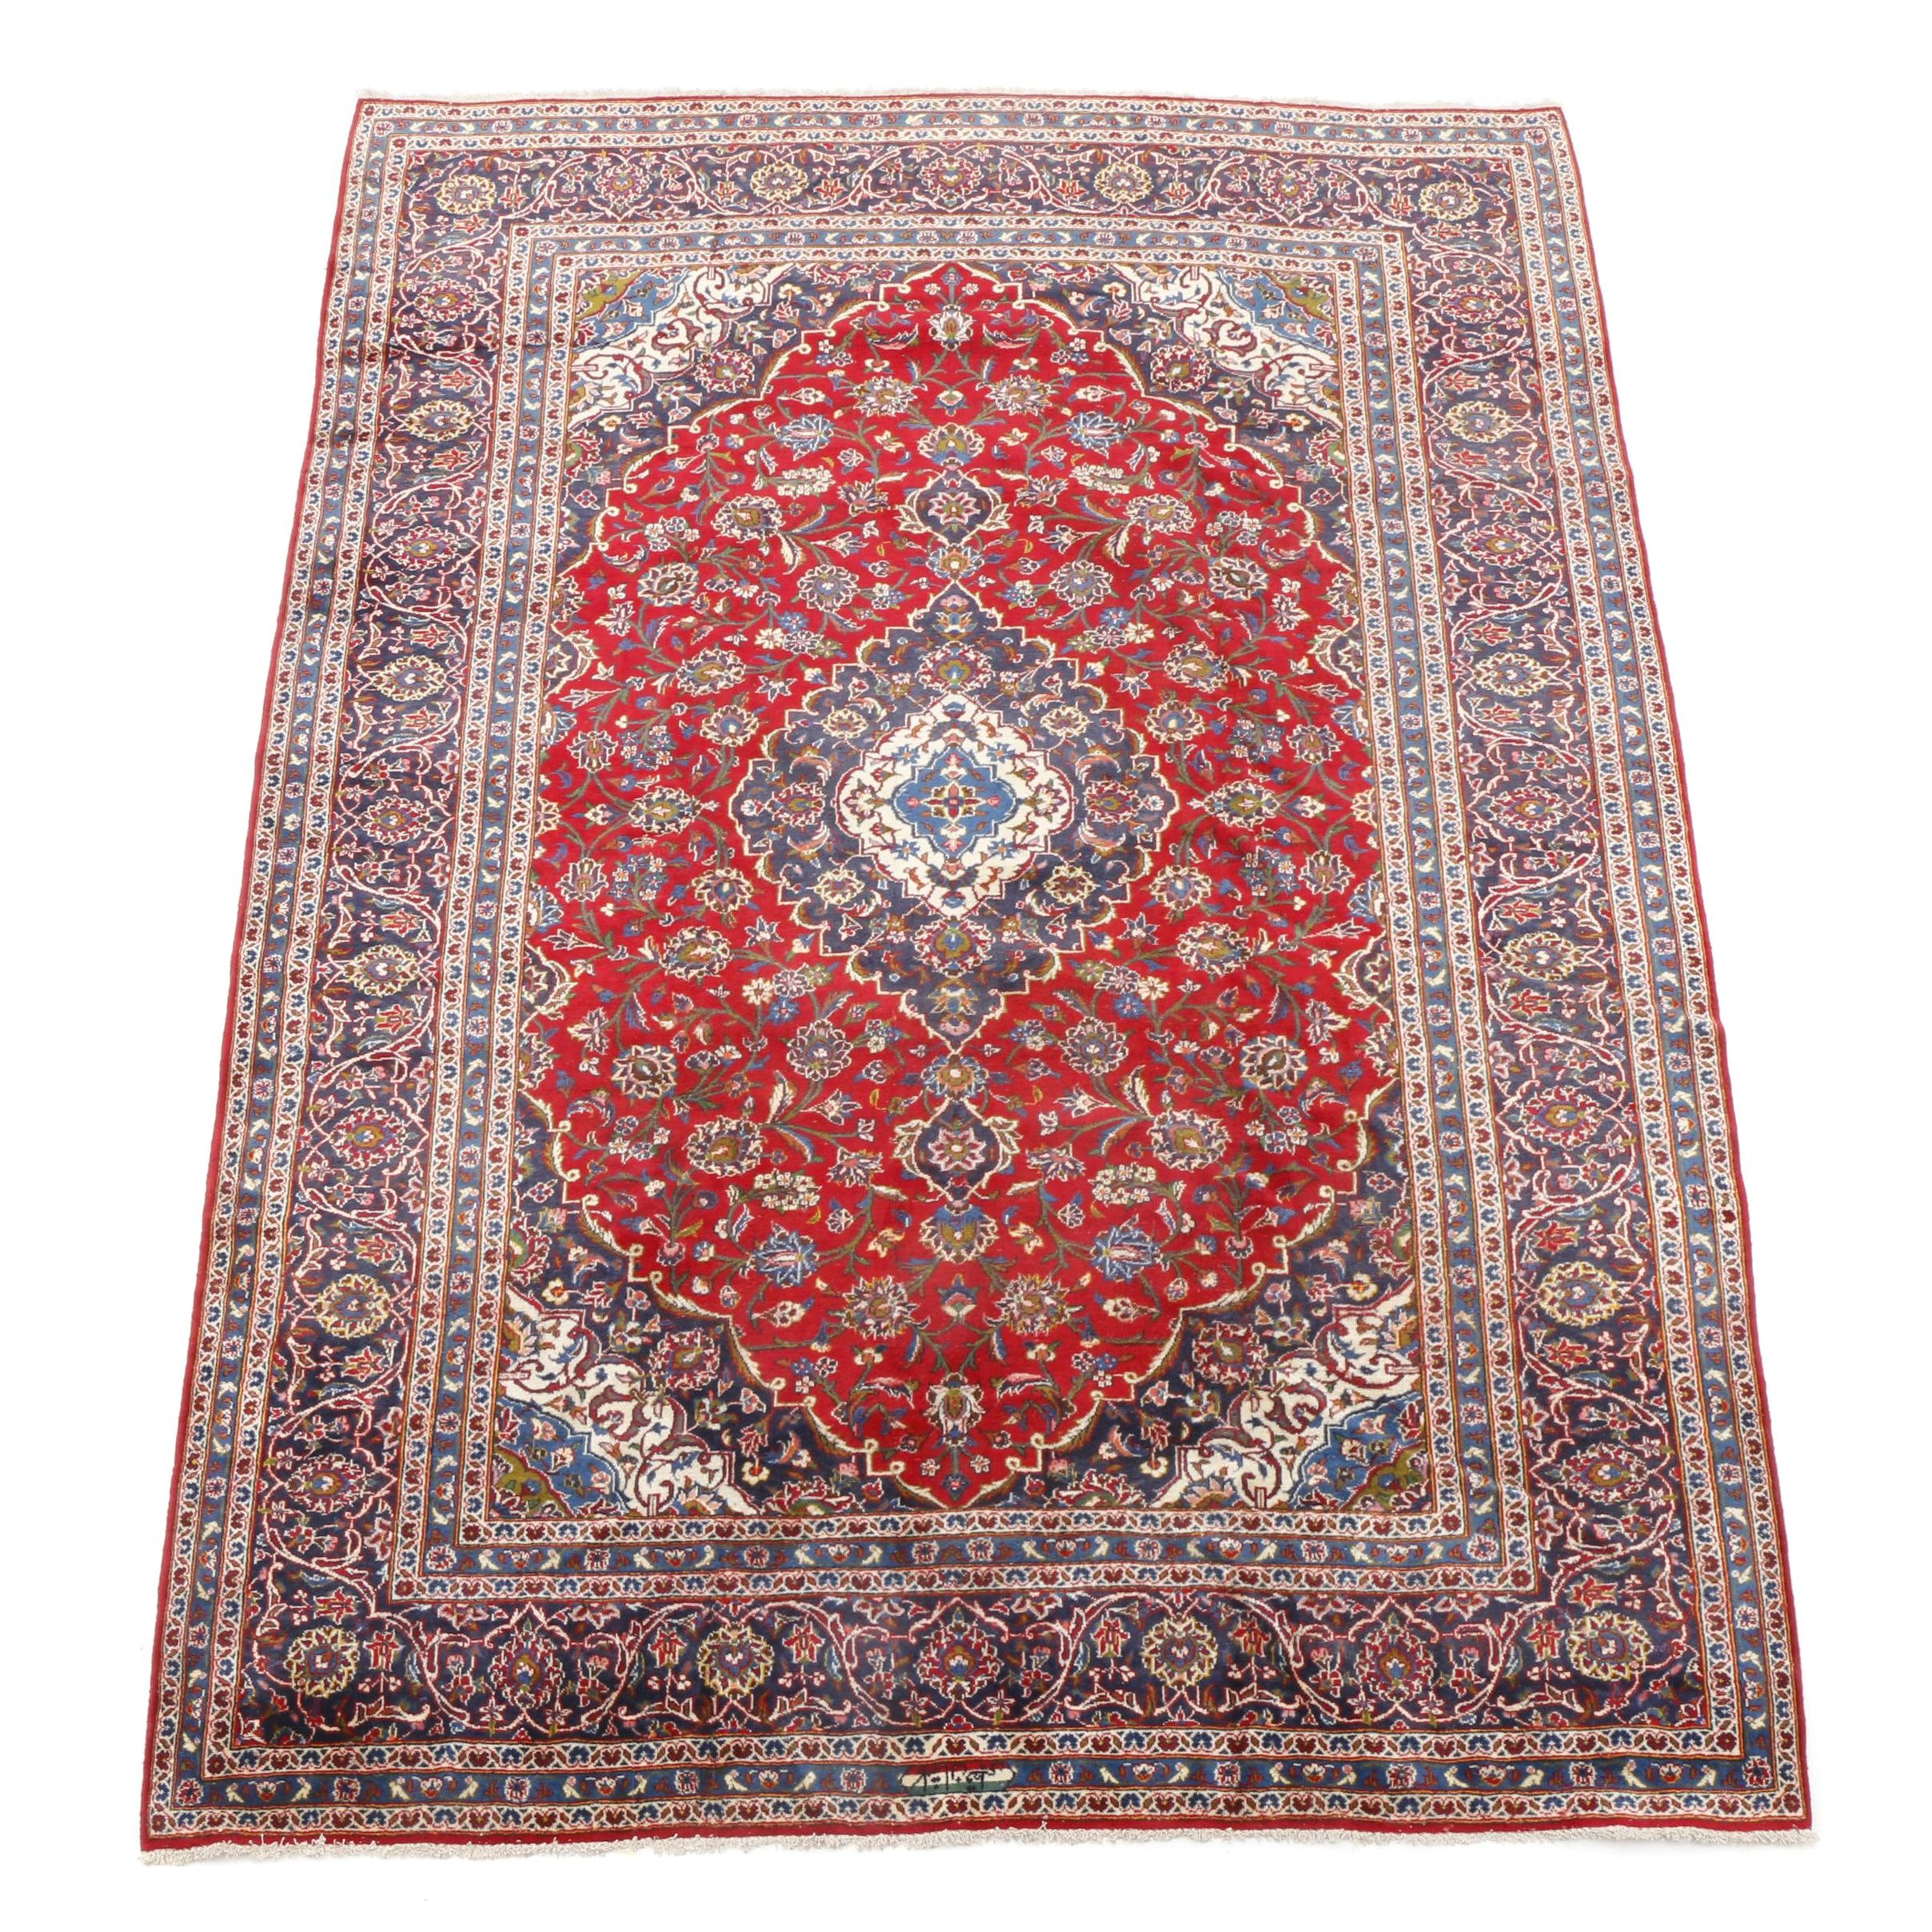 Hand-Knotted Signed Persian Kashan Room-Sized Rug